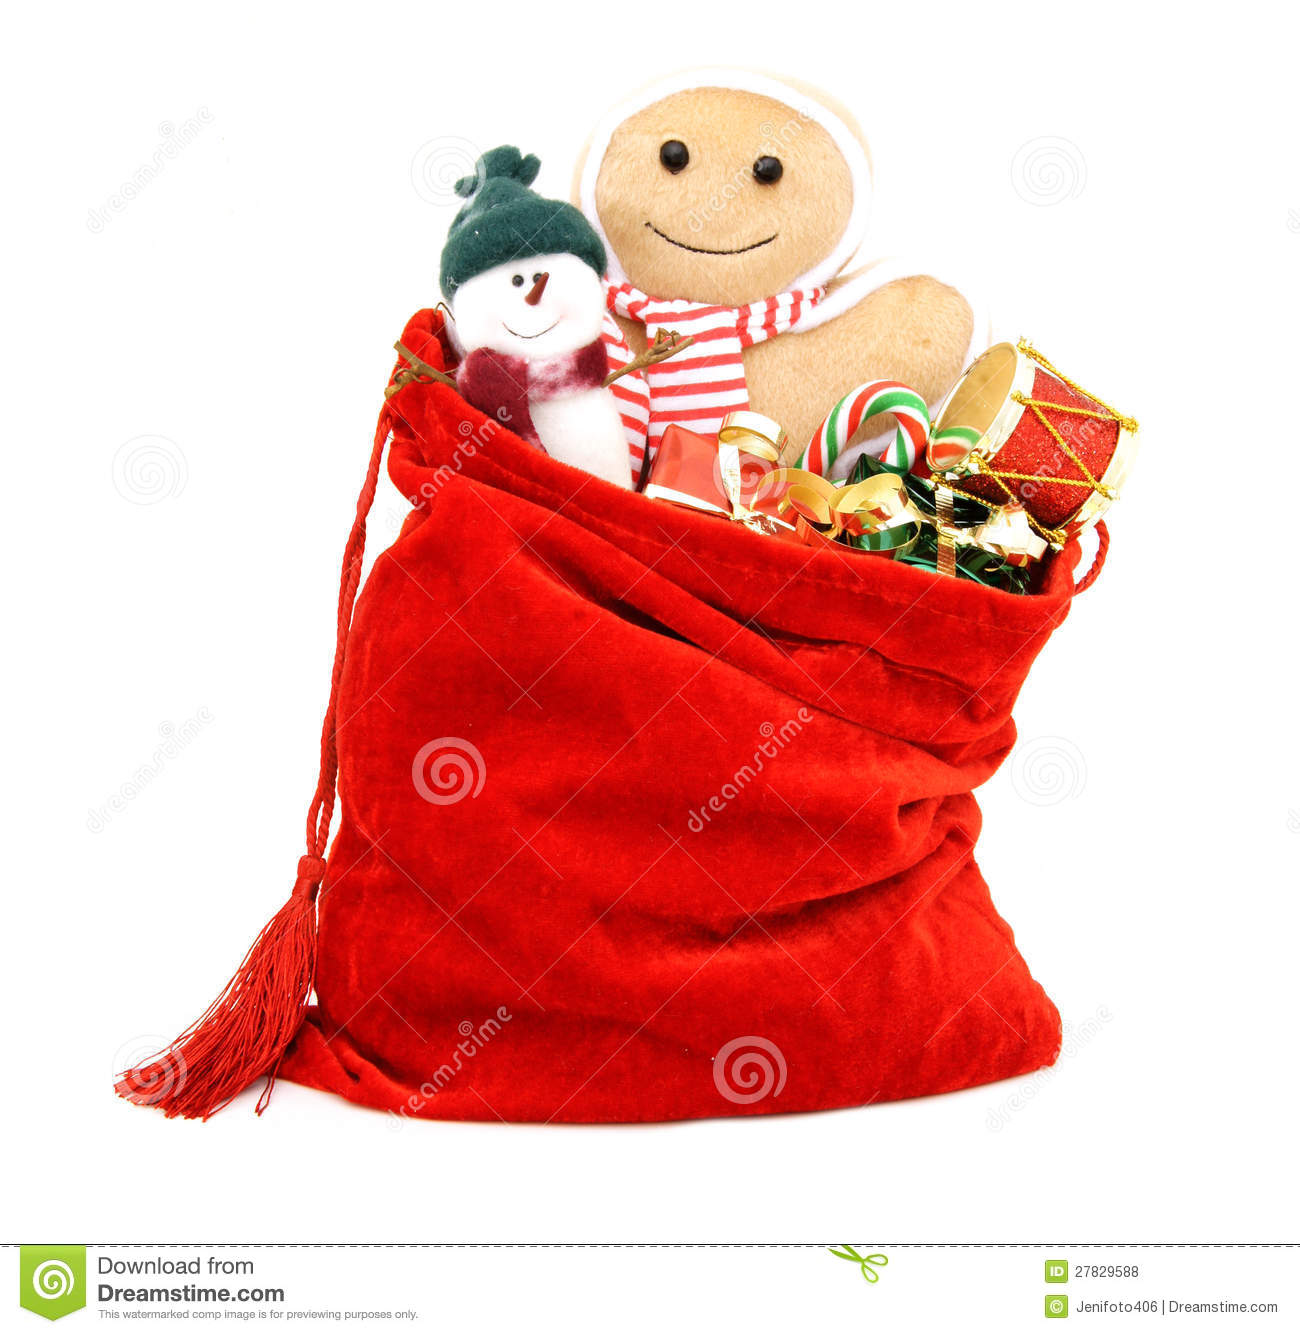 Toys And Gifts : Christmas gifts and toys royalty free stock photos image